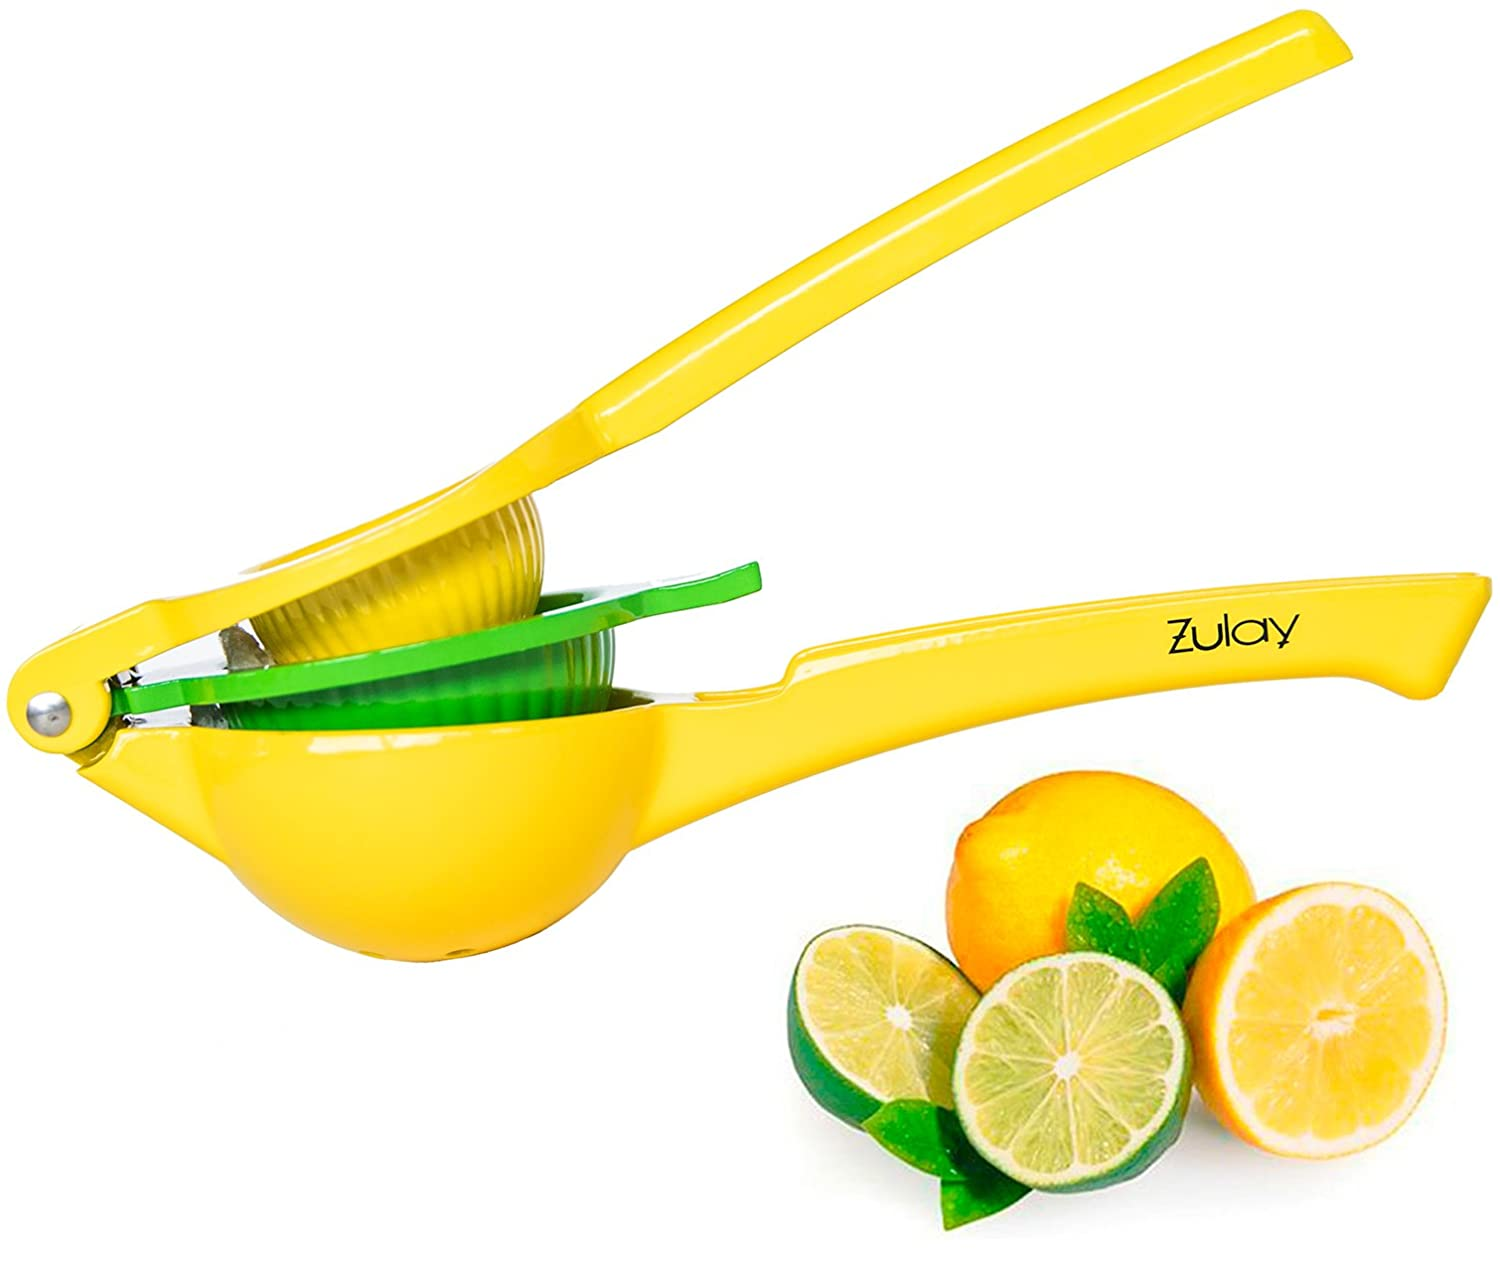 Top Rated Zulay Premium Quality Metal Lemon Lime Squeezer - Manual Citrus Press Juicer Zulay Kitchen